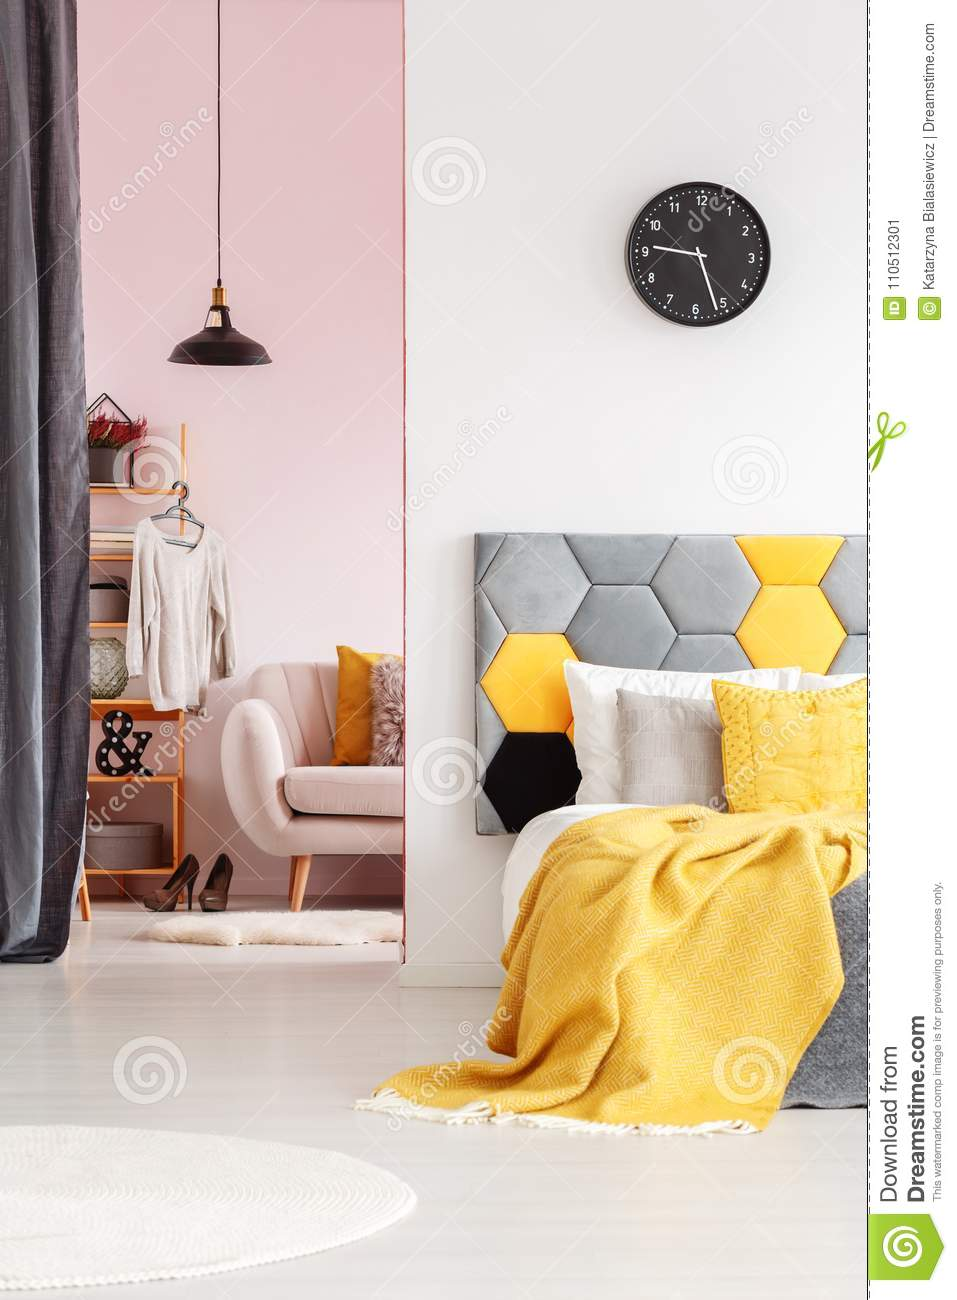 Yellow And Grey Bedroom Interior Stock Image - Image of ...